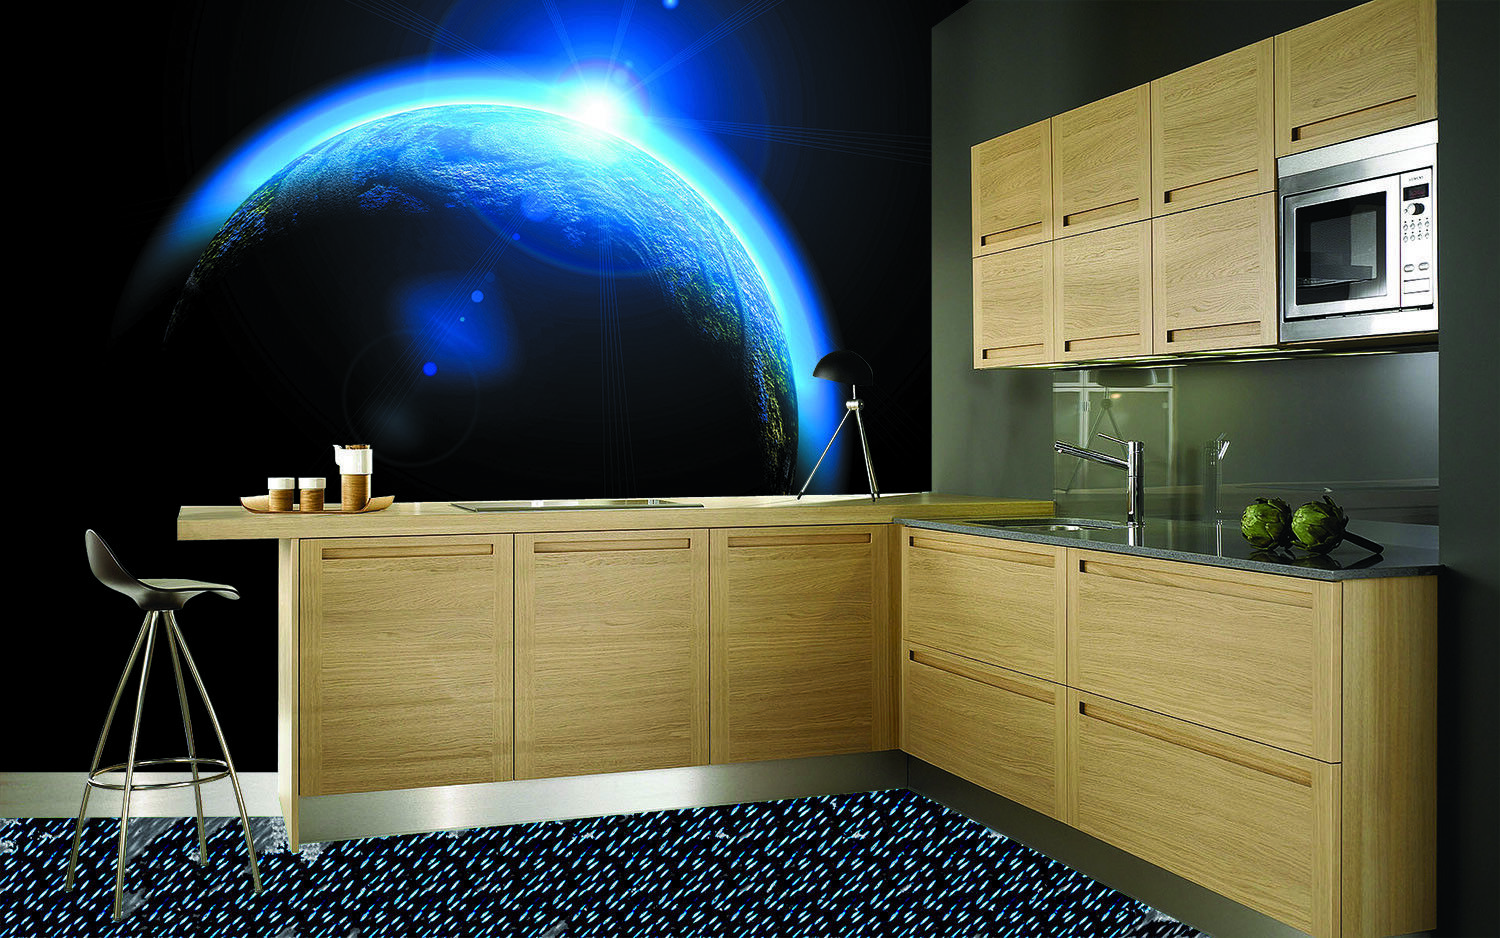 3D Blau Light Earth 99 Wall Paper Murals Wall Print Wall Wallpaper Mural AU Kyra